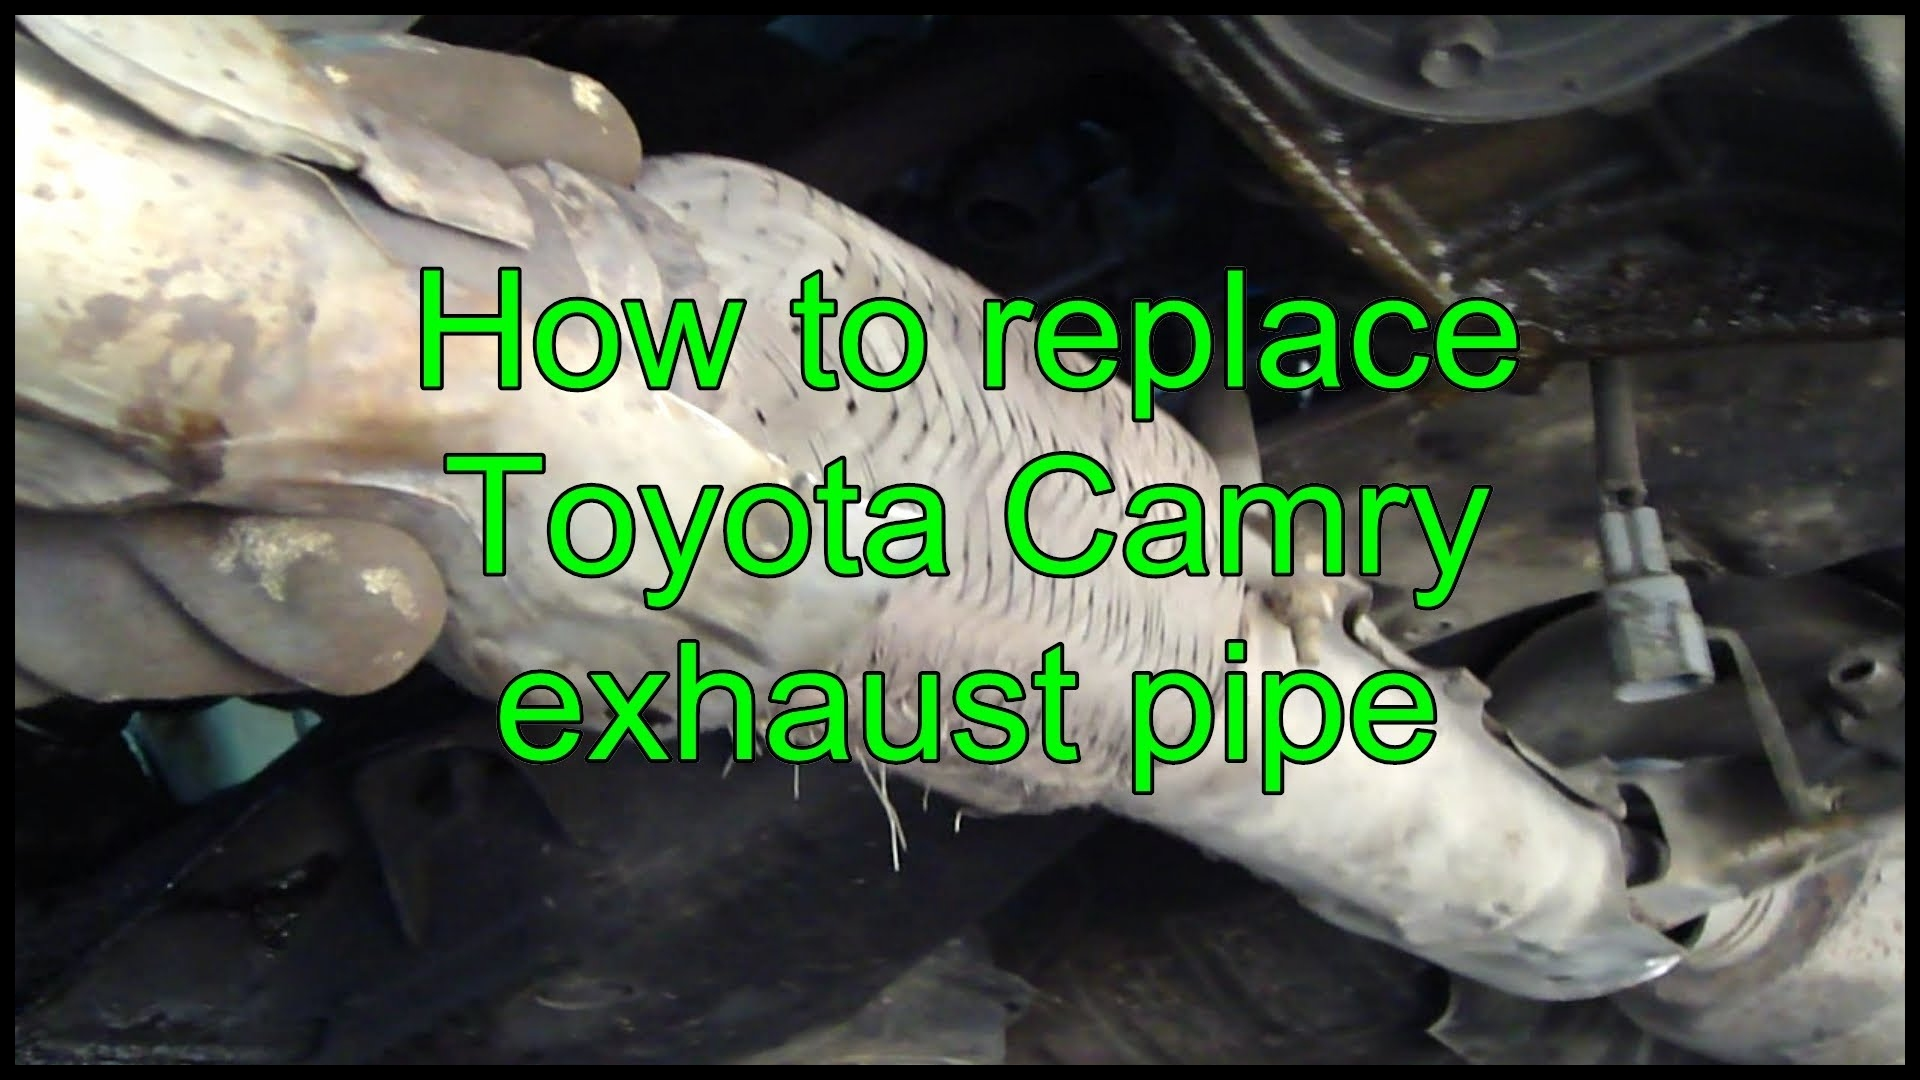 2005 toyota Corolla Exhaust System Diagram How to Replace toyota Camry Exhaust Pipe Years 1992 to